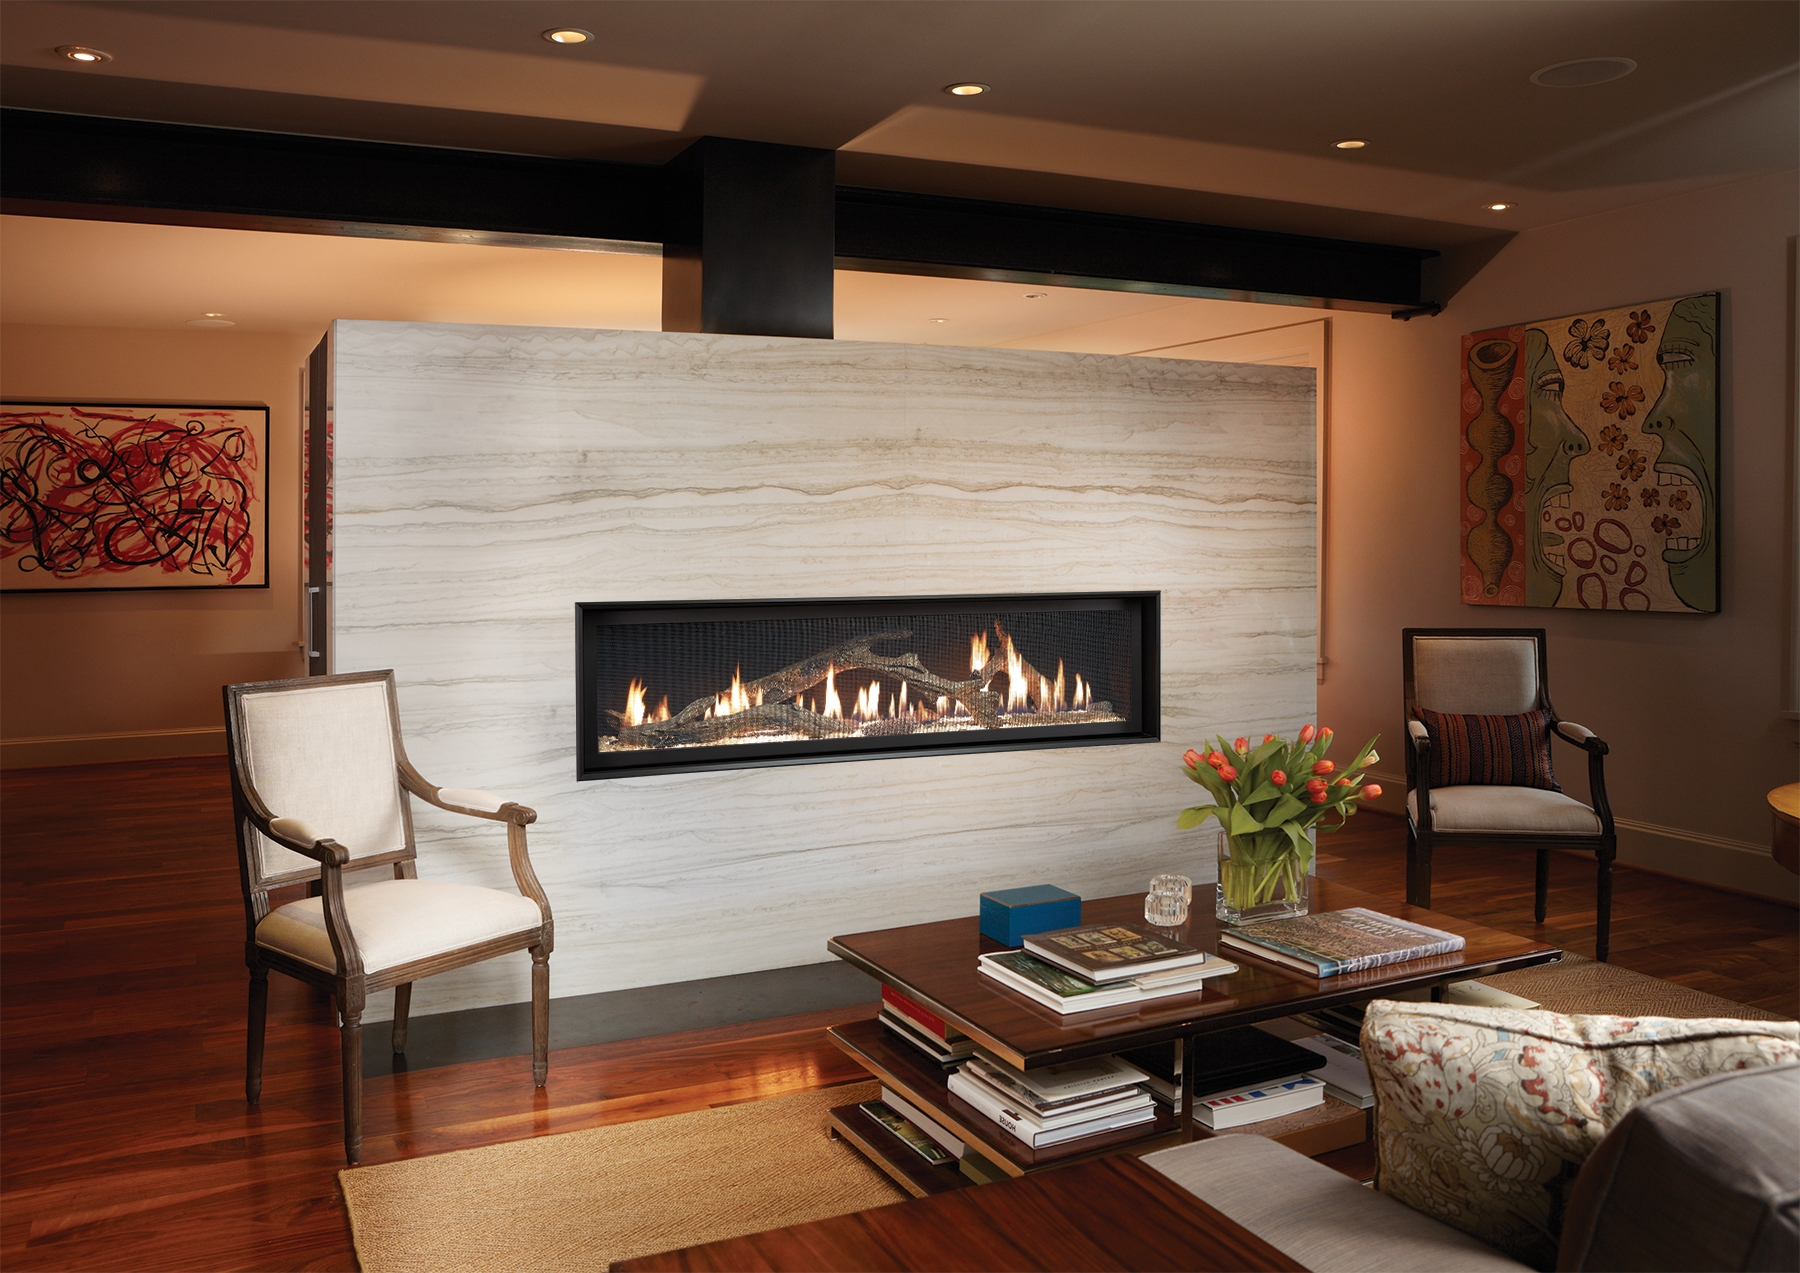 Image of the modern 6015 HO gas fireplace made by Fireplace Xtordinair featuring a modern linear design.